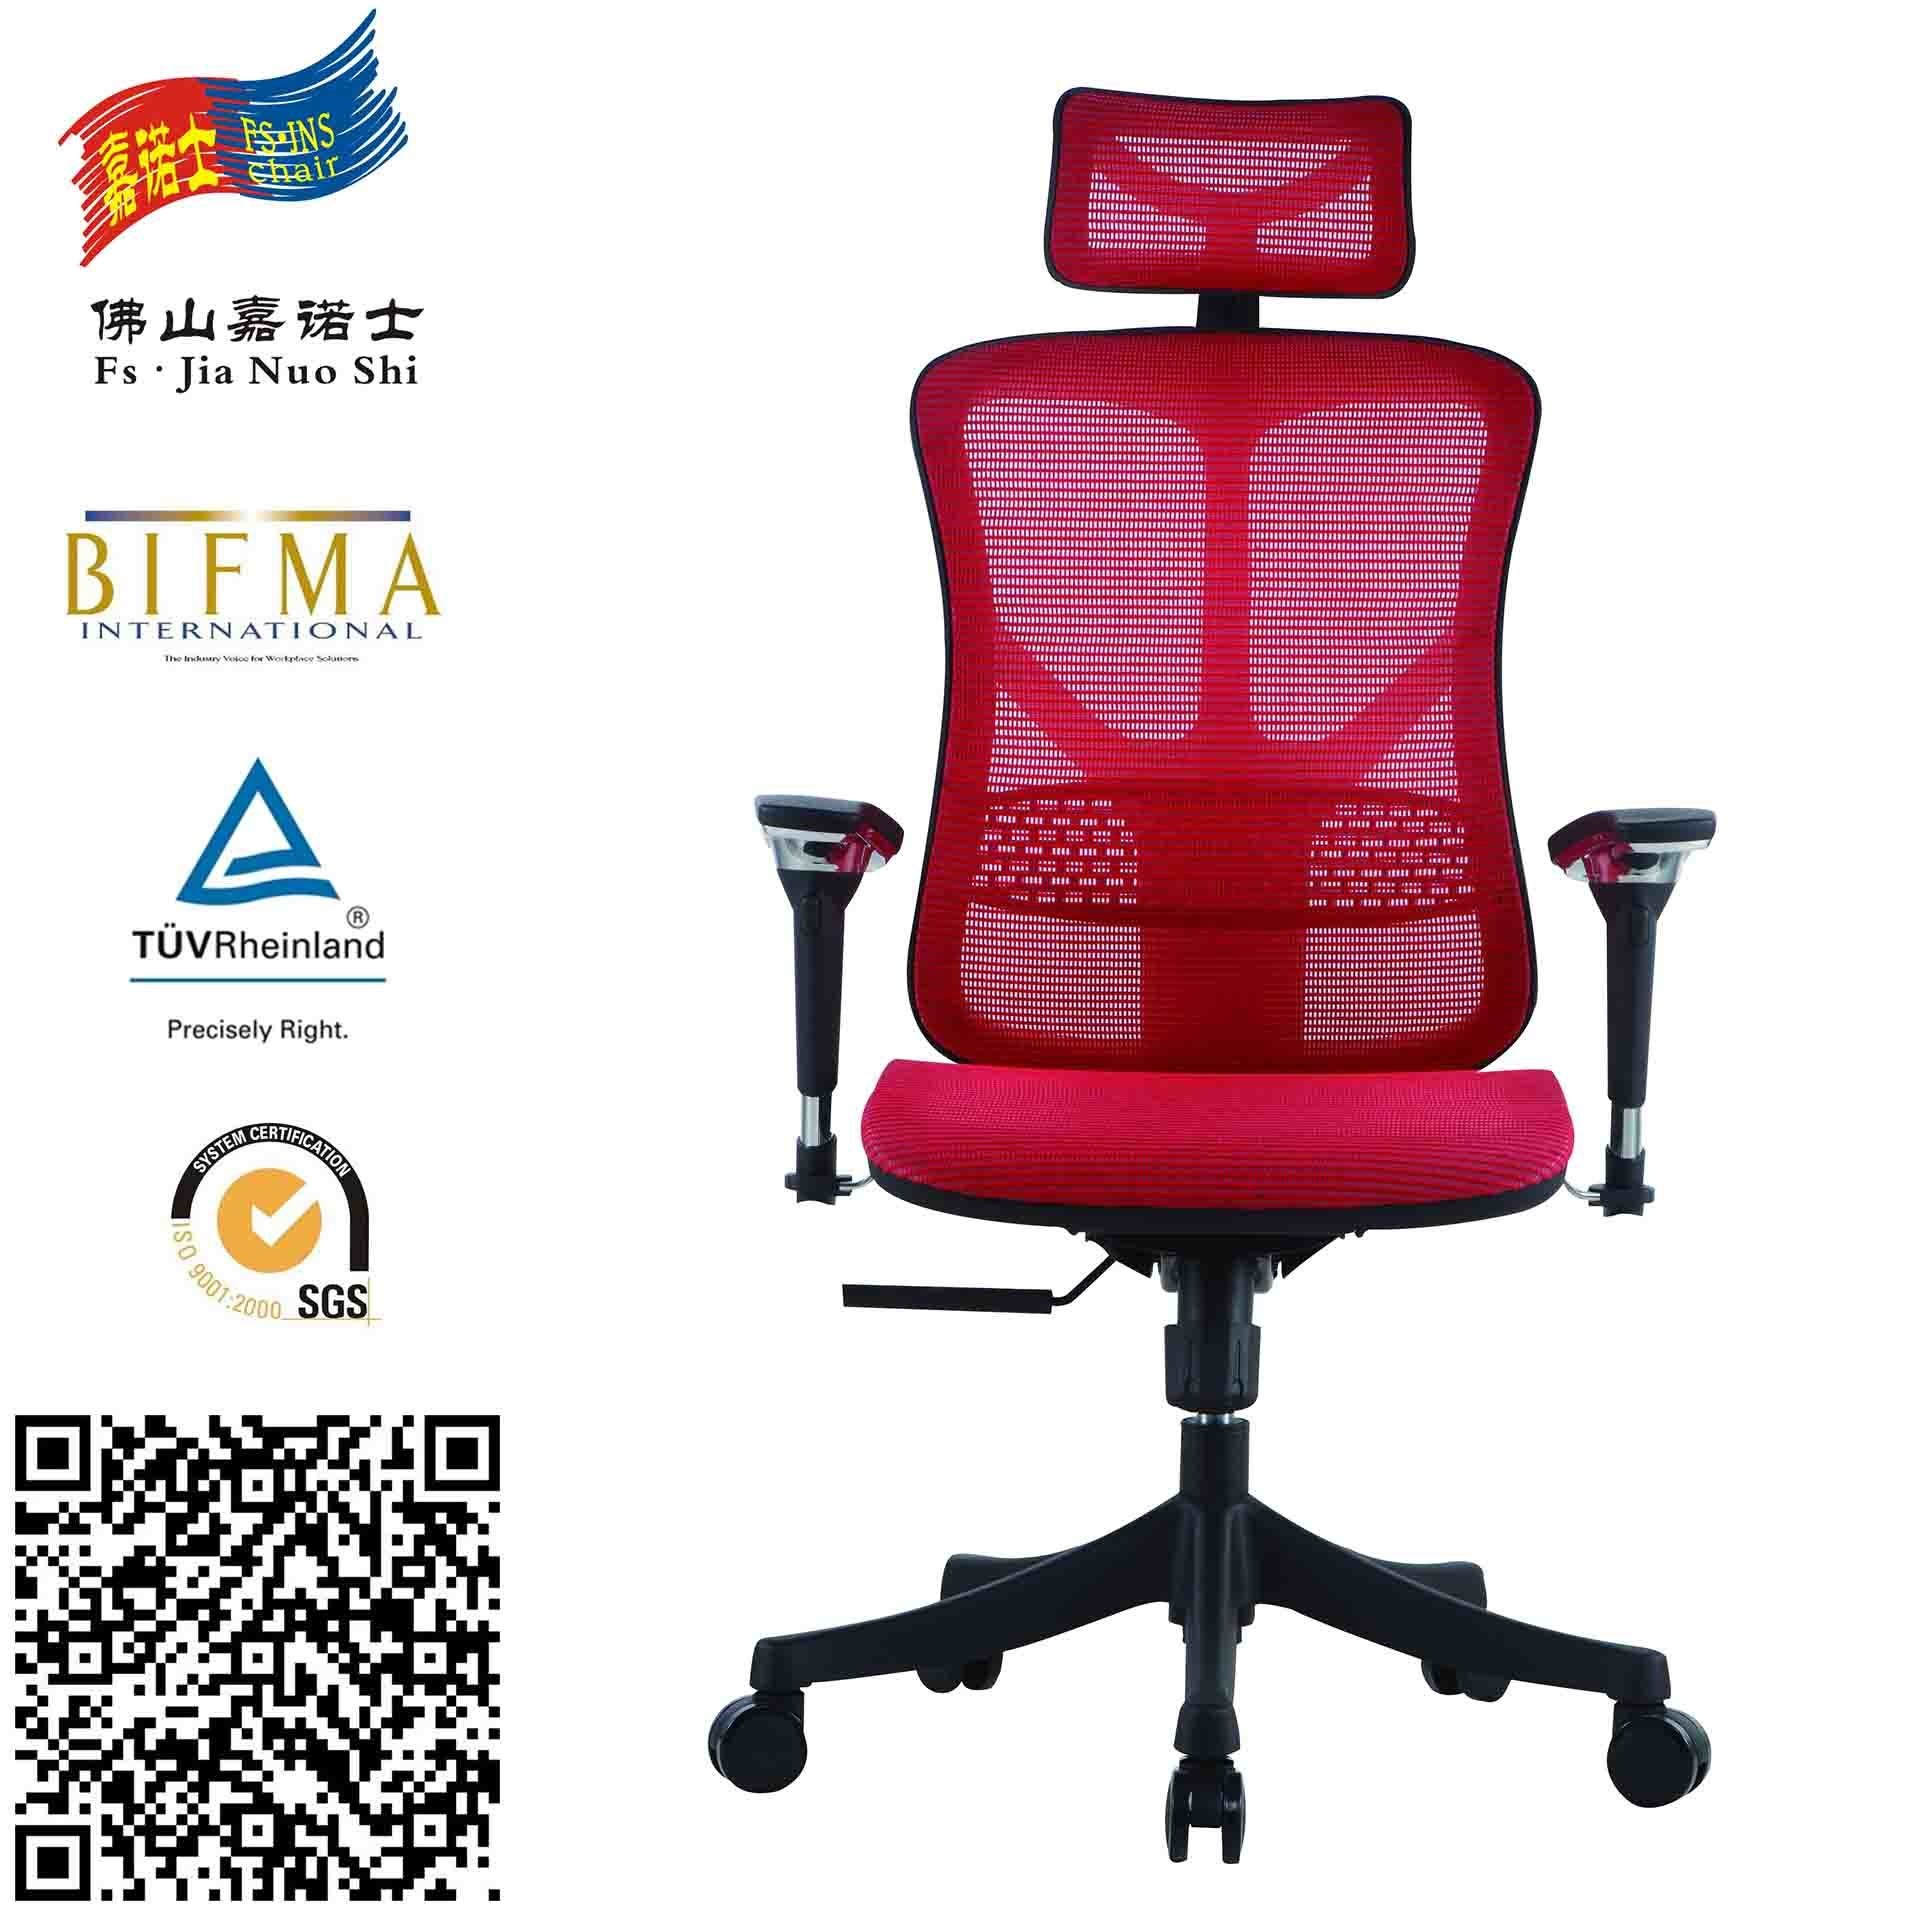 China Jns 521 Direct Supplier Most Comfortable Gaming Chair   China Gaming  Chair, Comfortable Chair